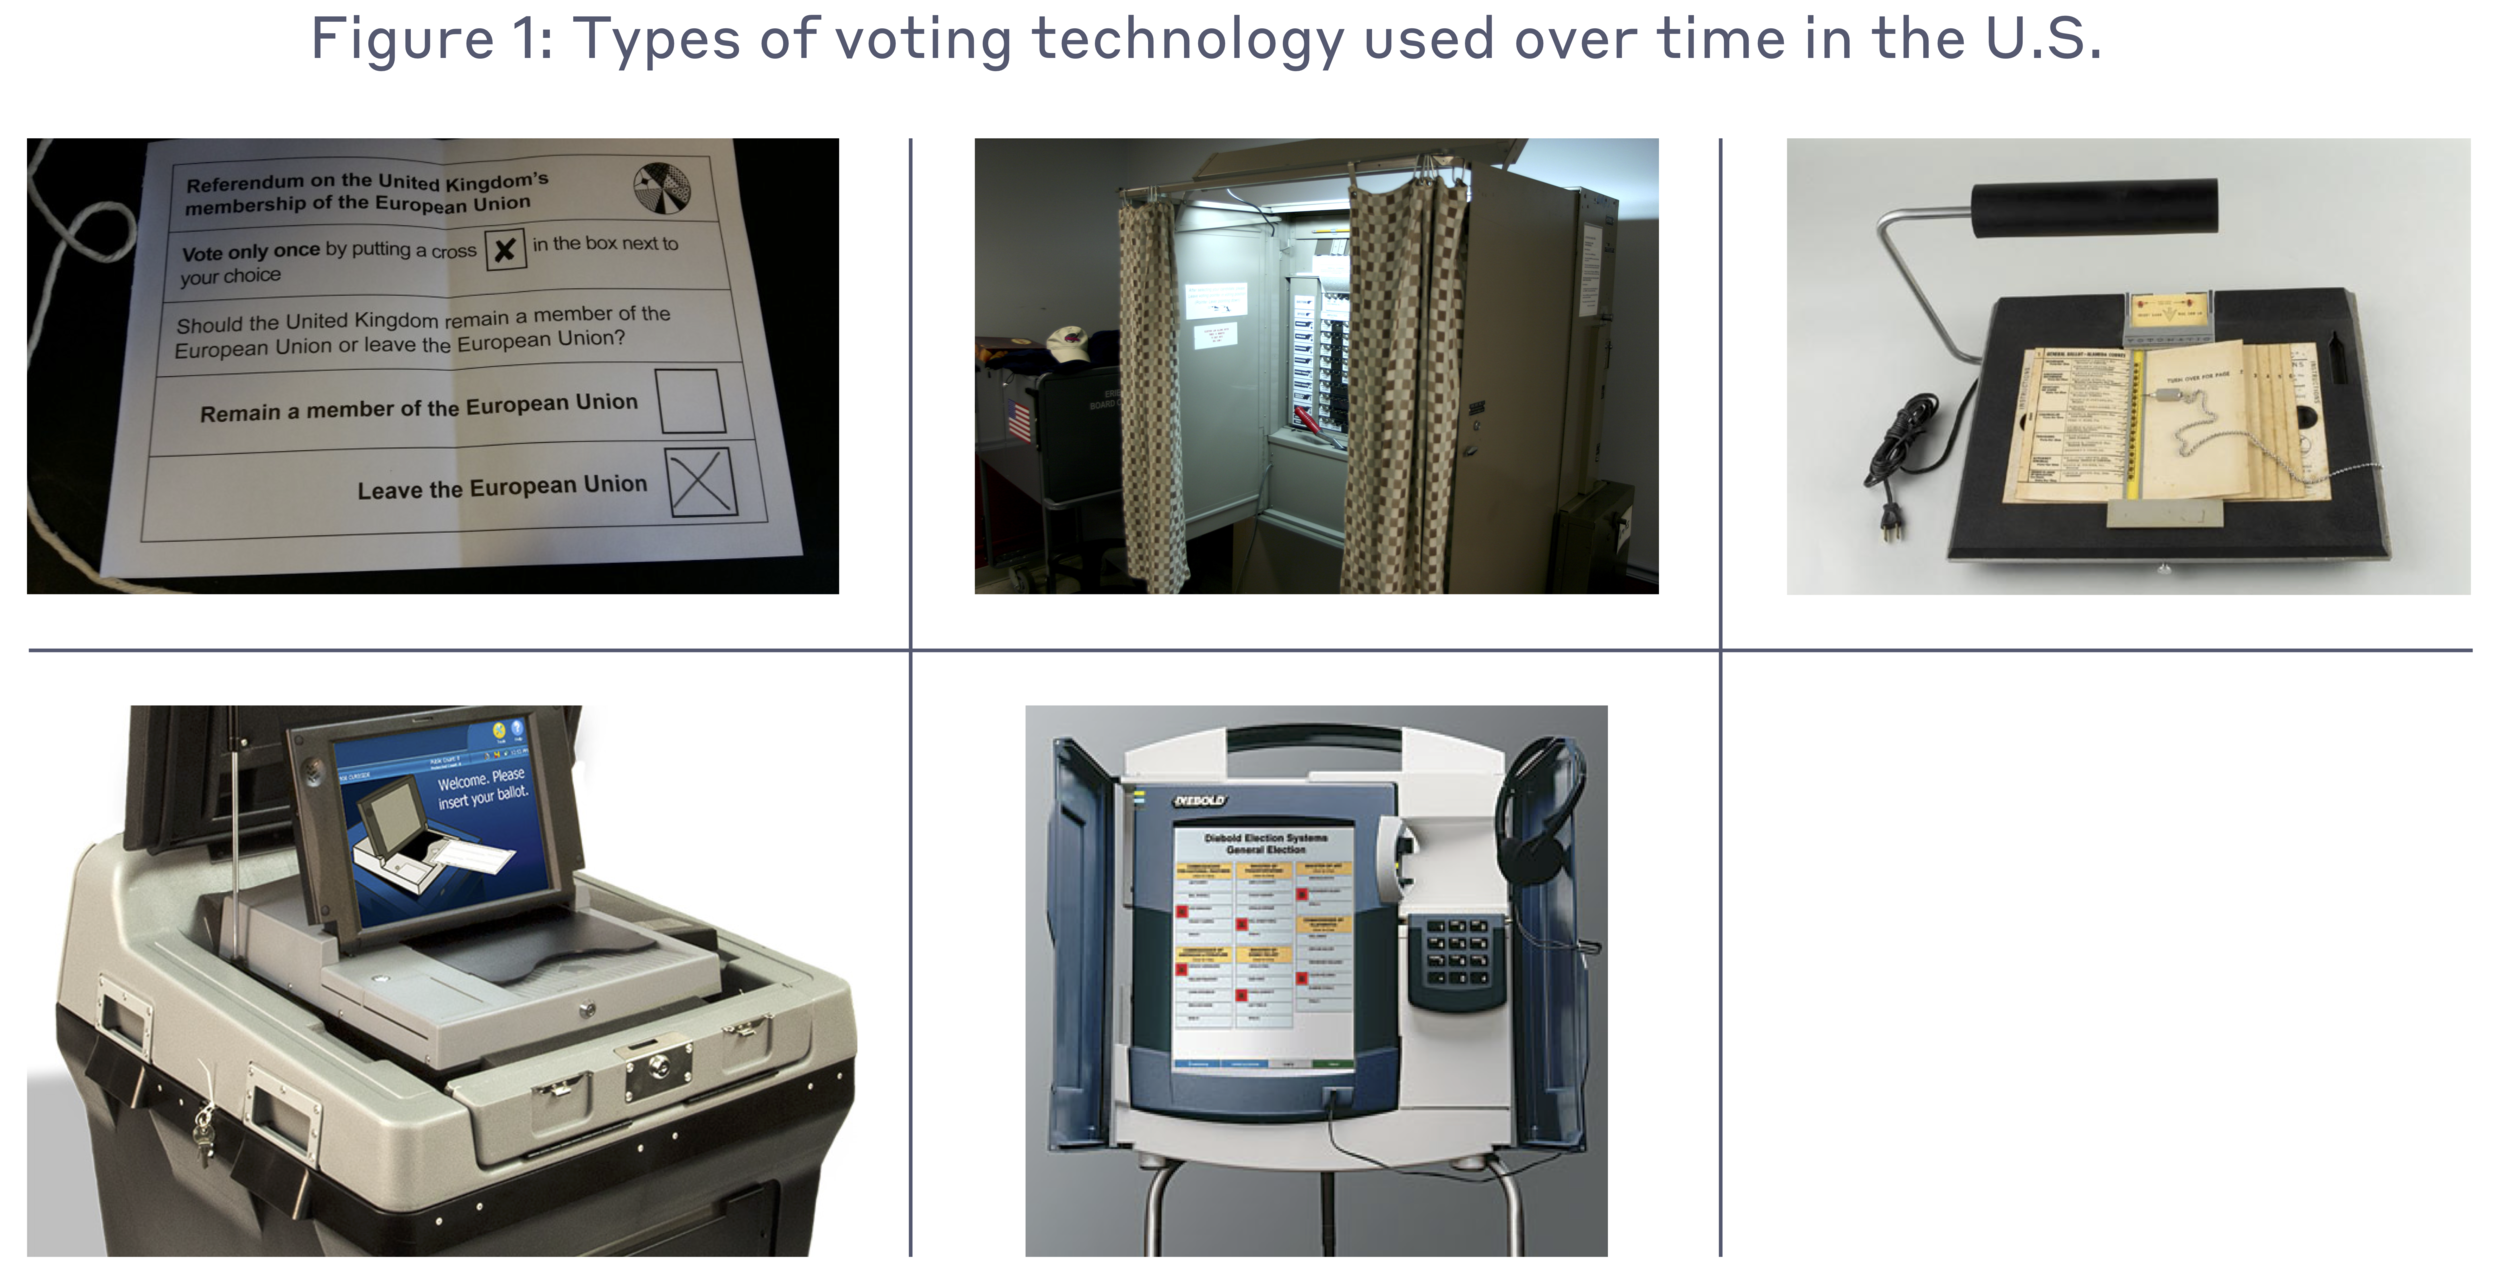 votetech_fig1.png